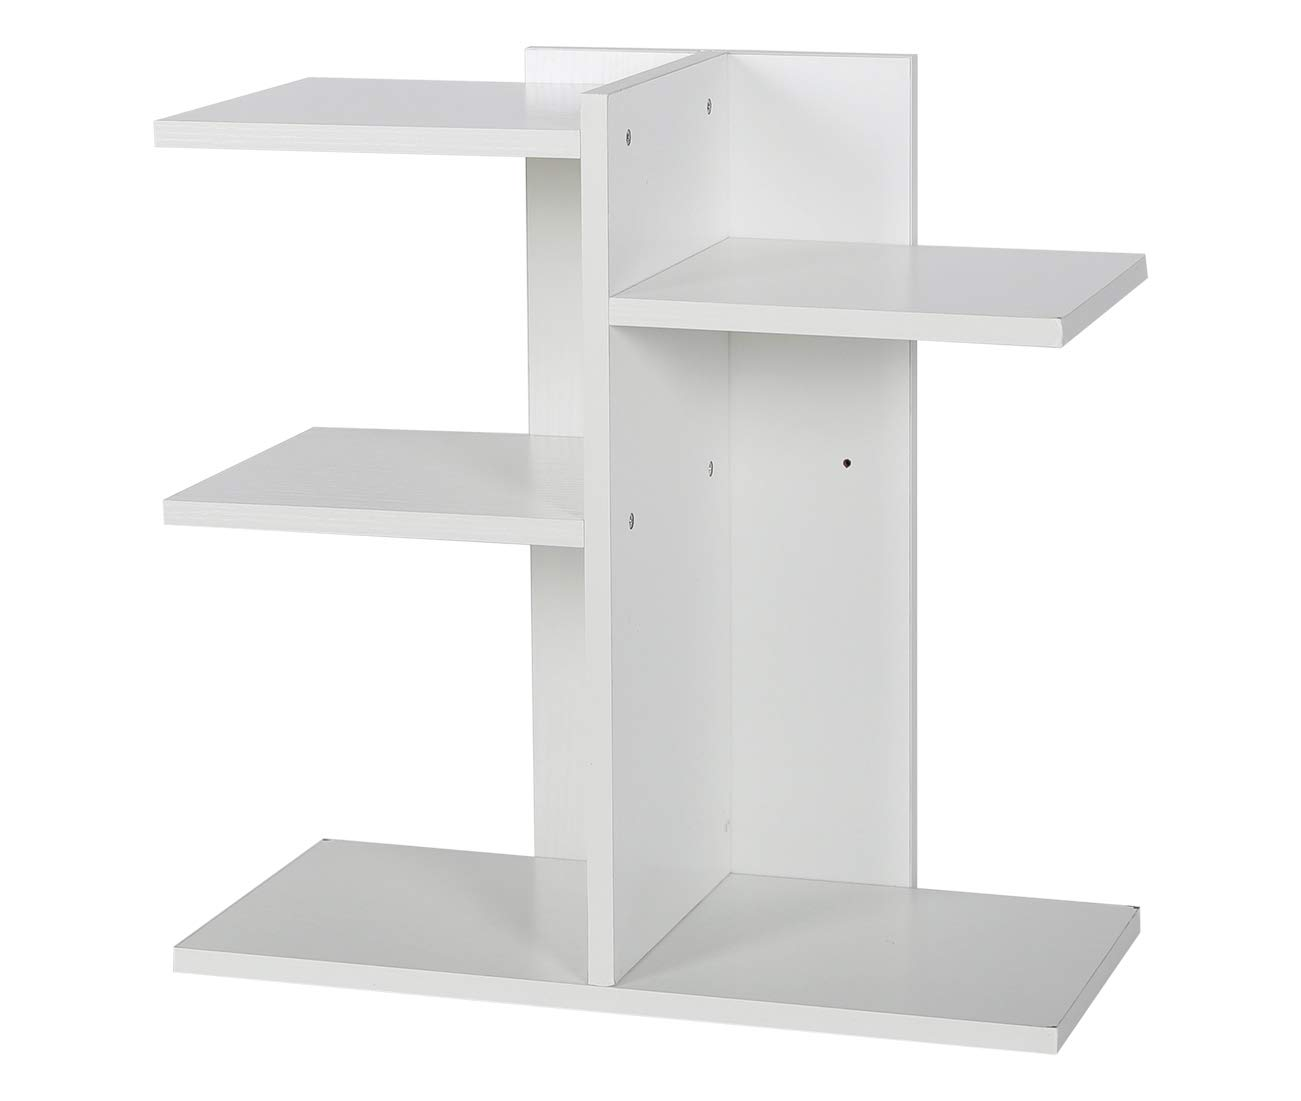 PAG Wood Desktop Bookshelf Assembled Countertop Bookcase Literature Holder Accessories Display Rack Office Supplies Desk Organizer, White by PAG (Image #5)